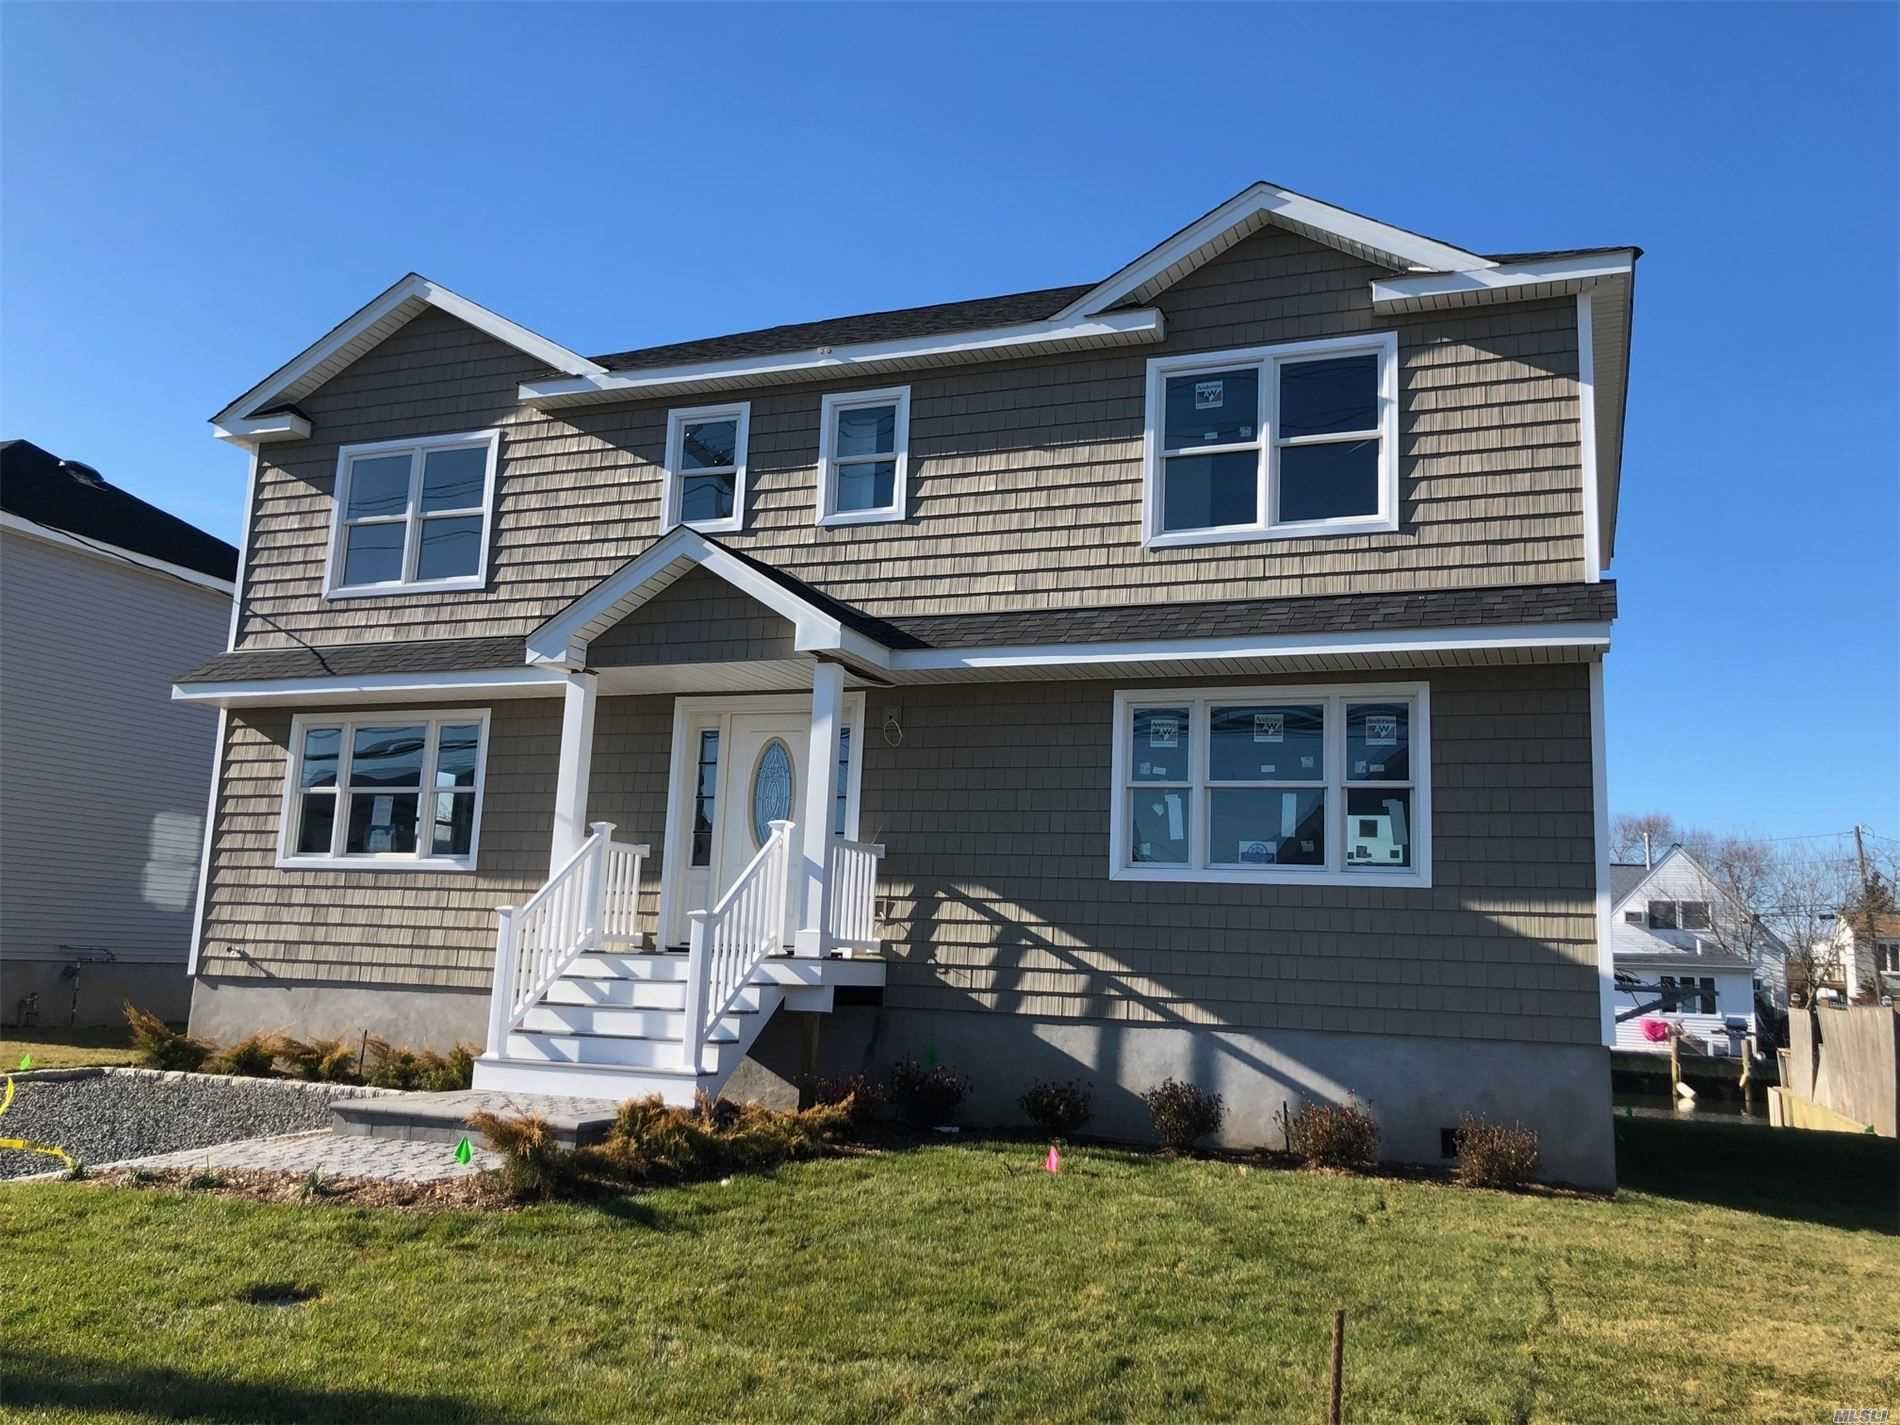 2542 Ocean Avenue, Seaford, NY 11783 - MLS#: 3200033